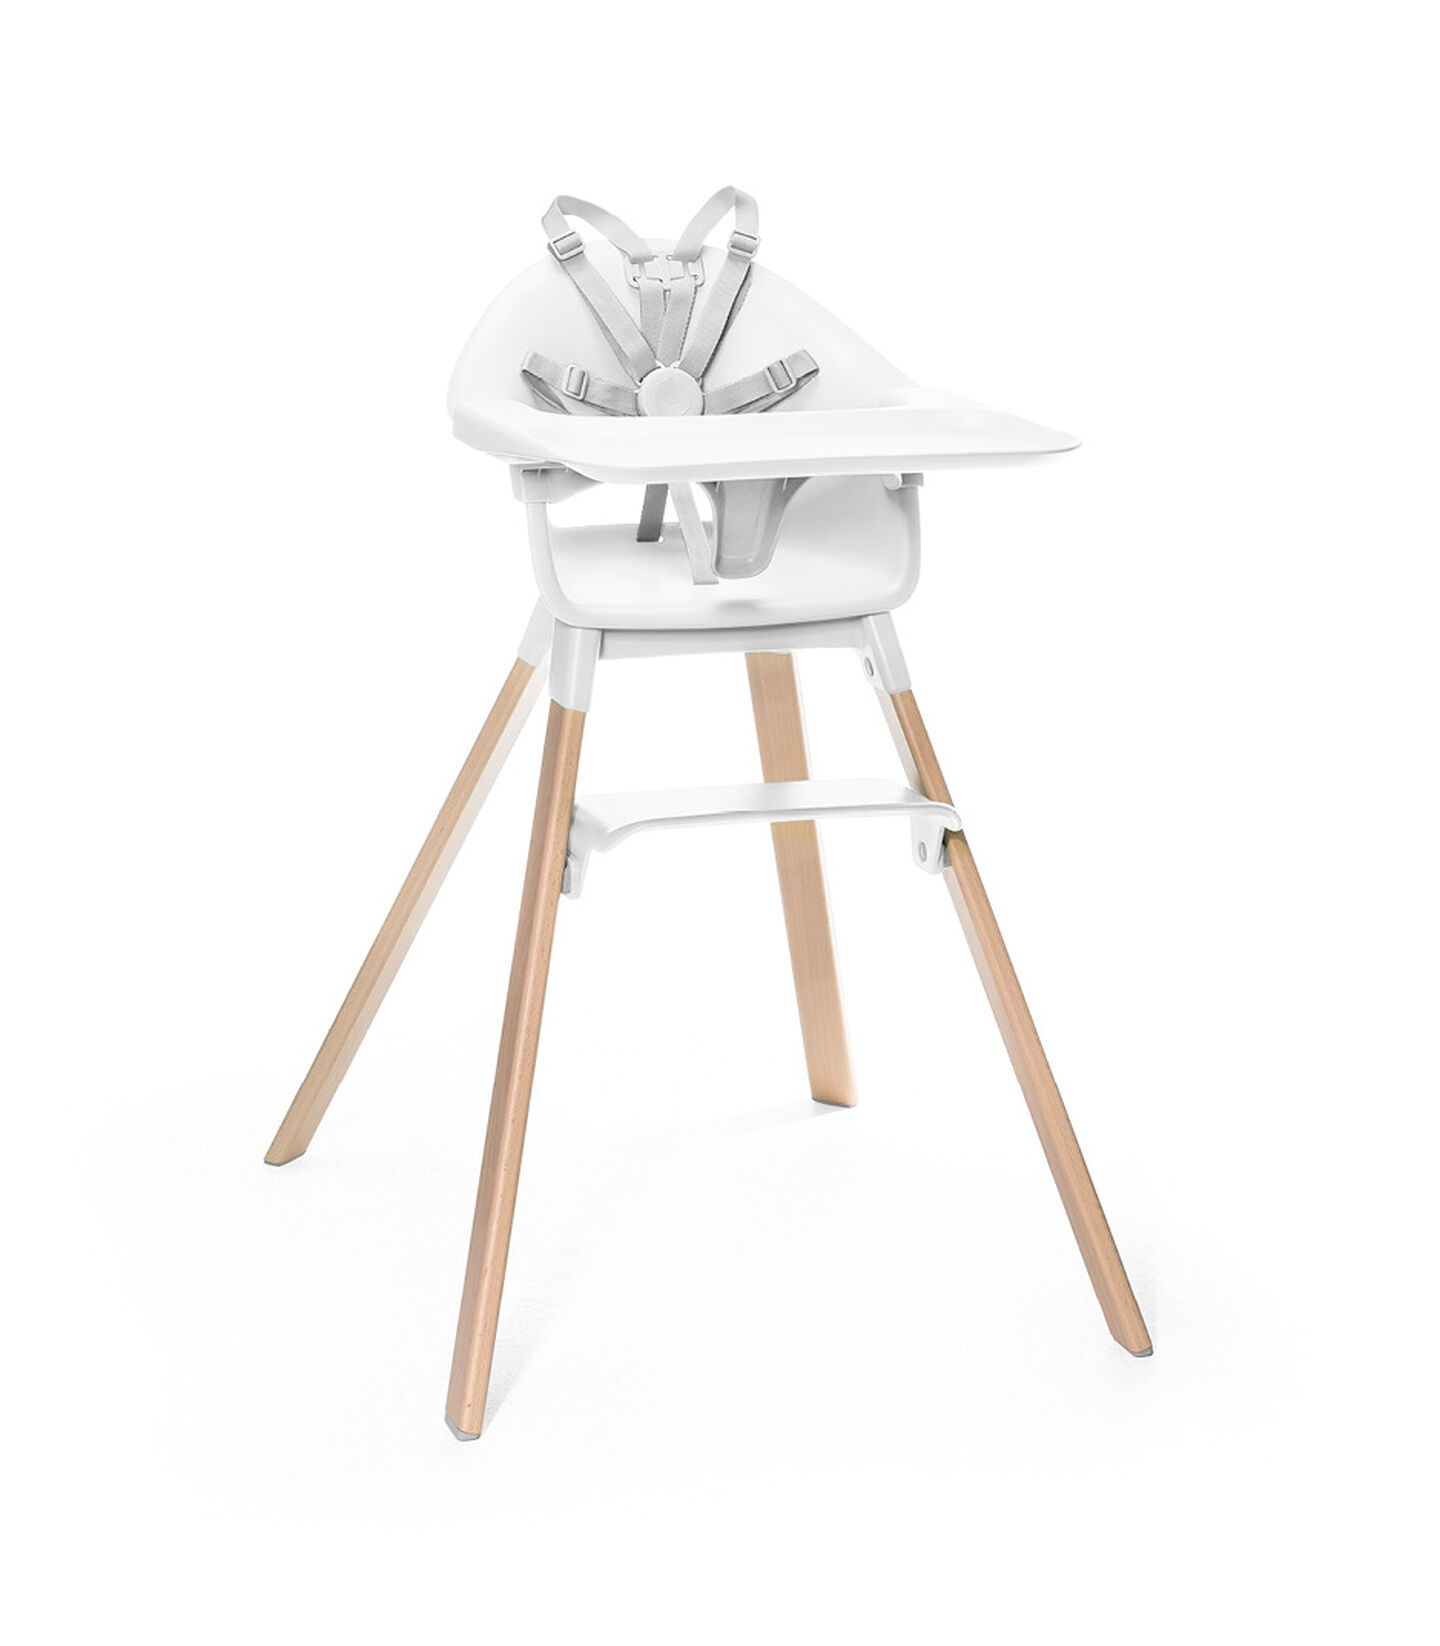 Stokke® Clikk™ High Chair White, White, mainview view 2